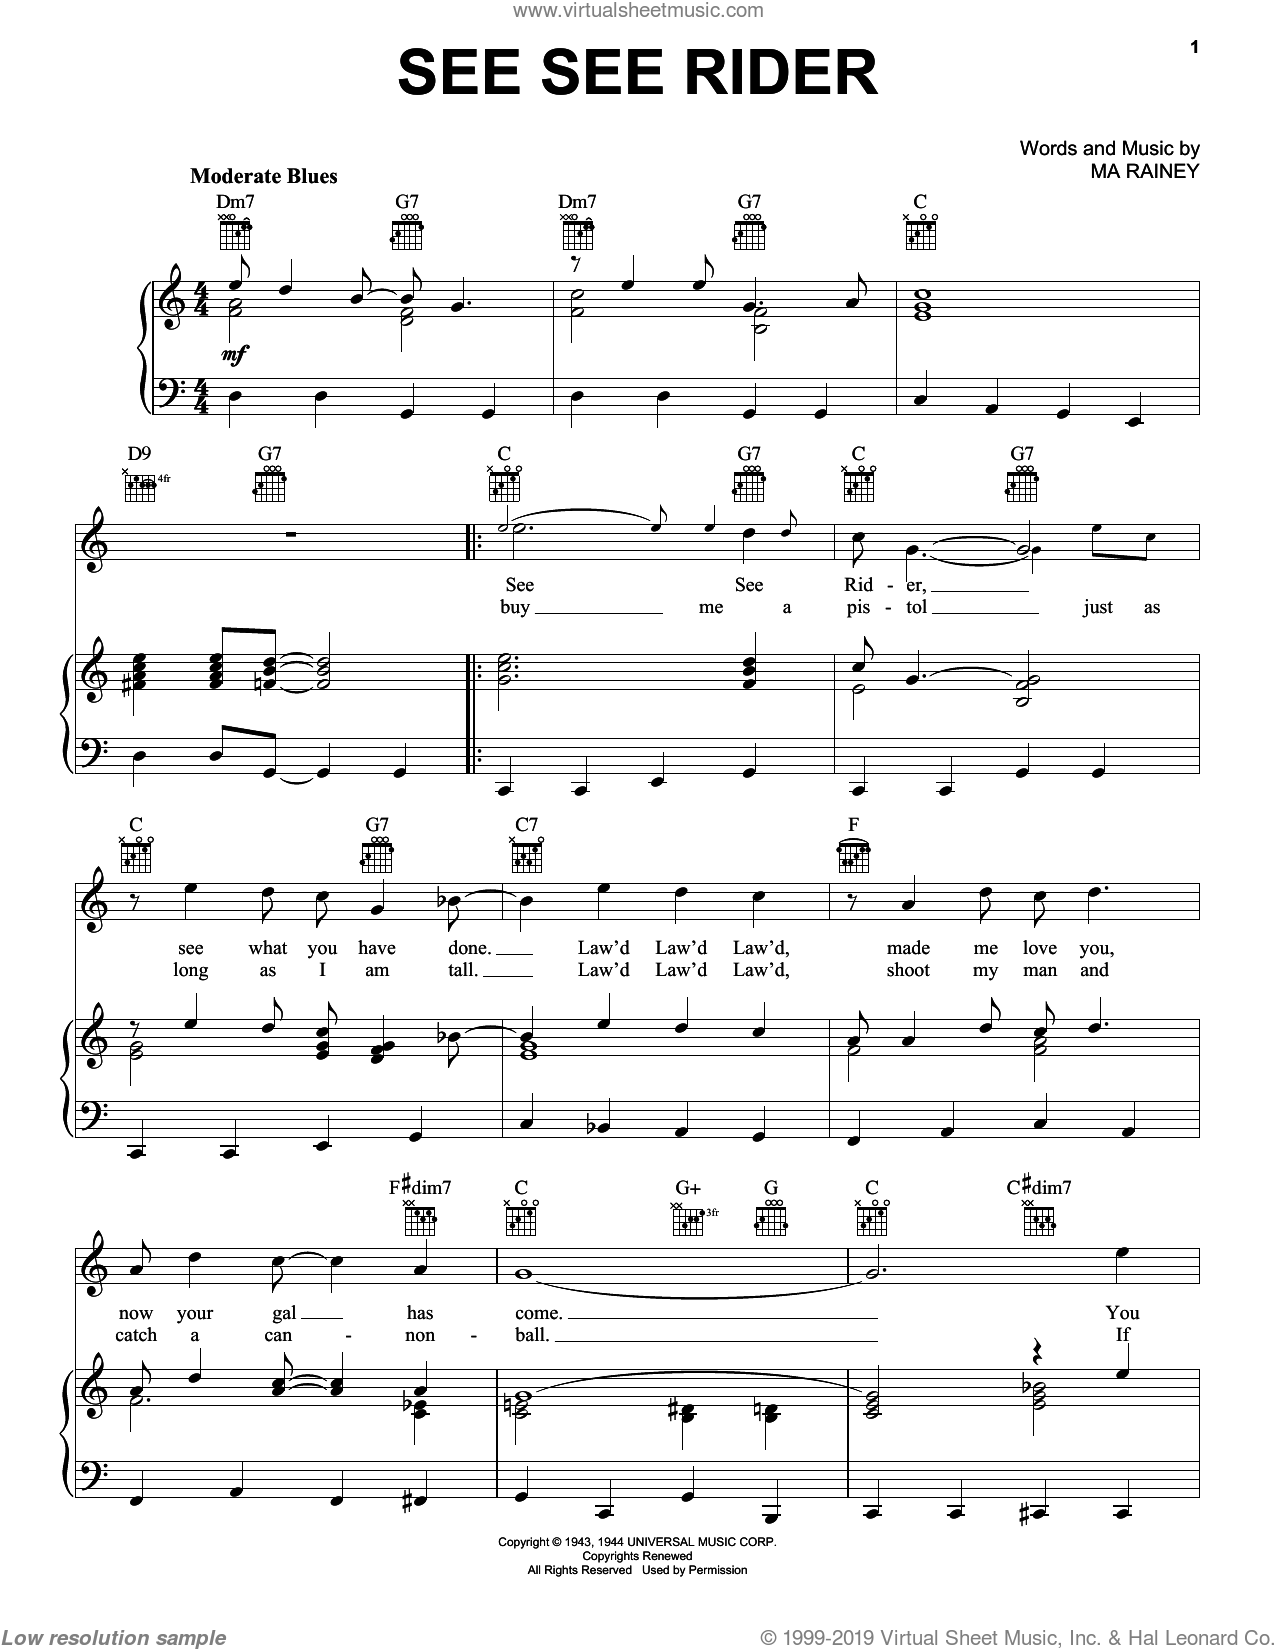 See See Rider sheet music for voice, piano or guitar by Ma Rainey, Big Bill Broonzy, Ray Charles and The Animals. Score Image Preview.